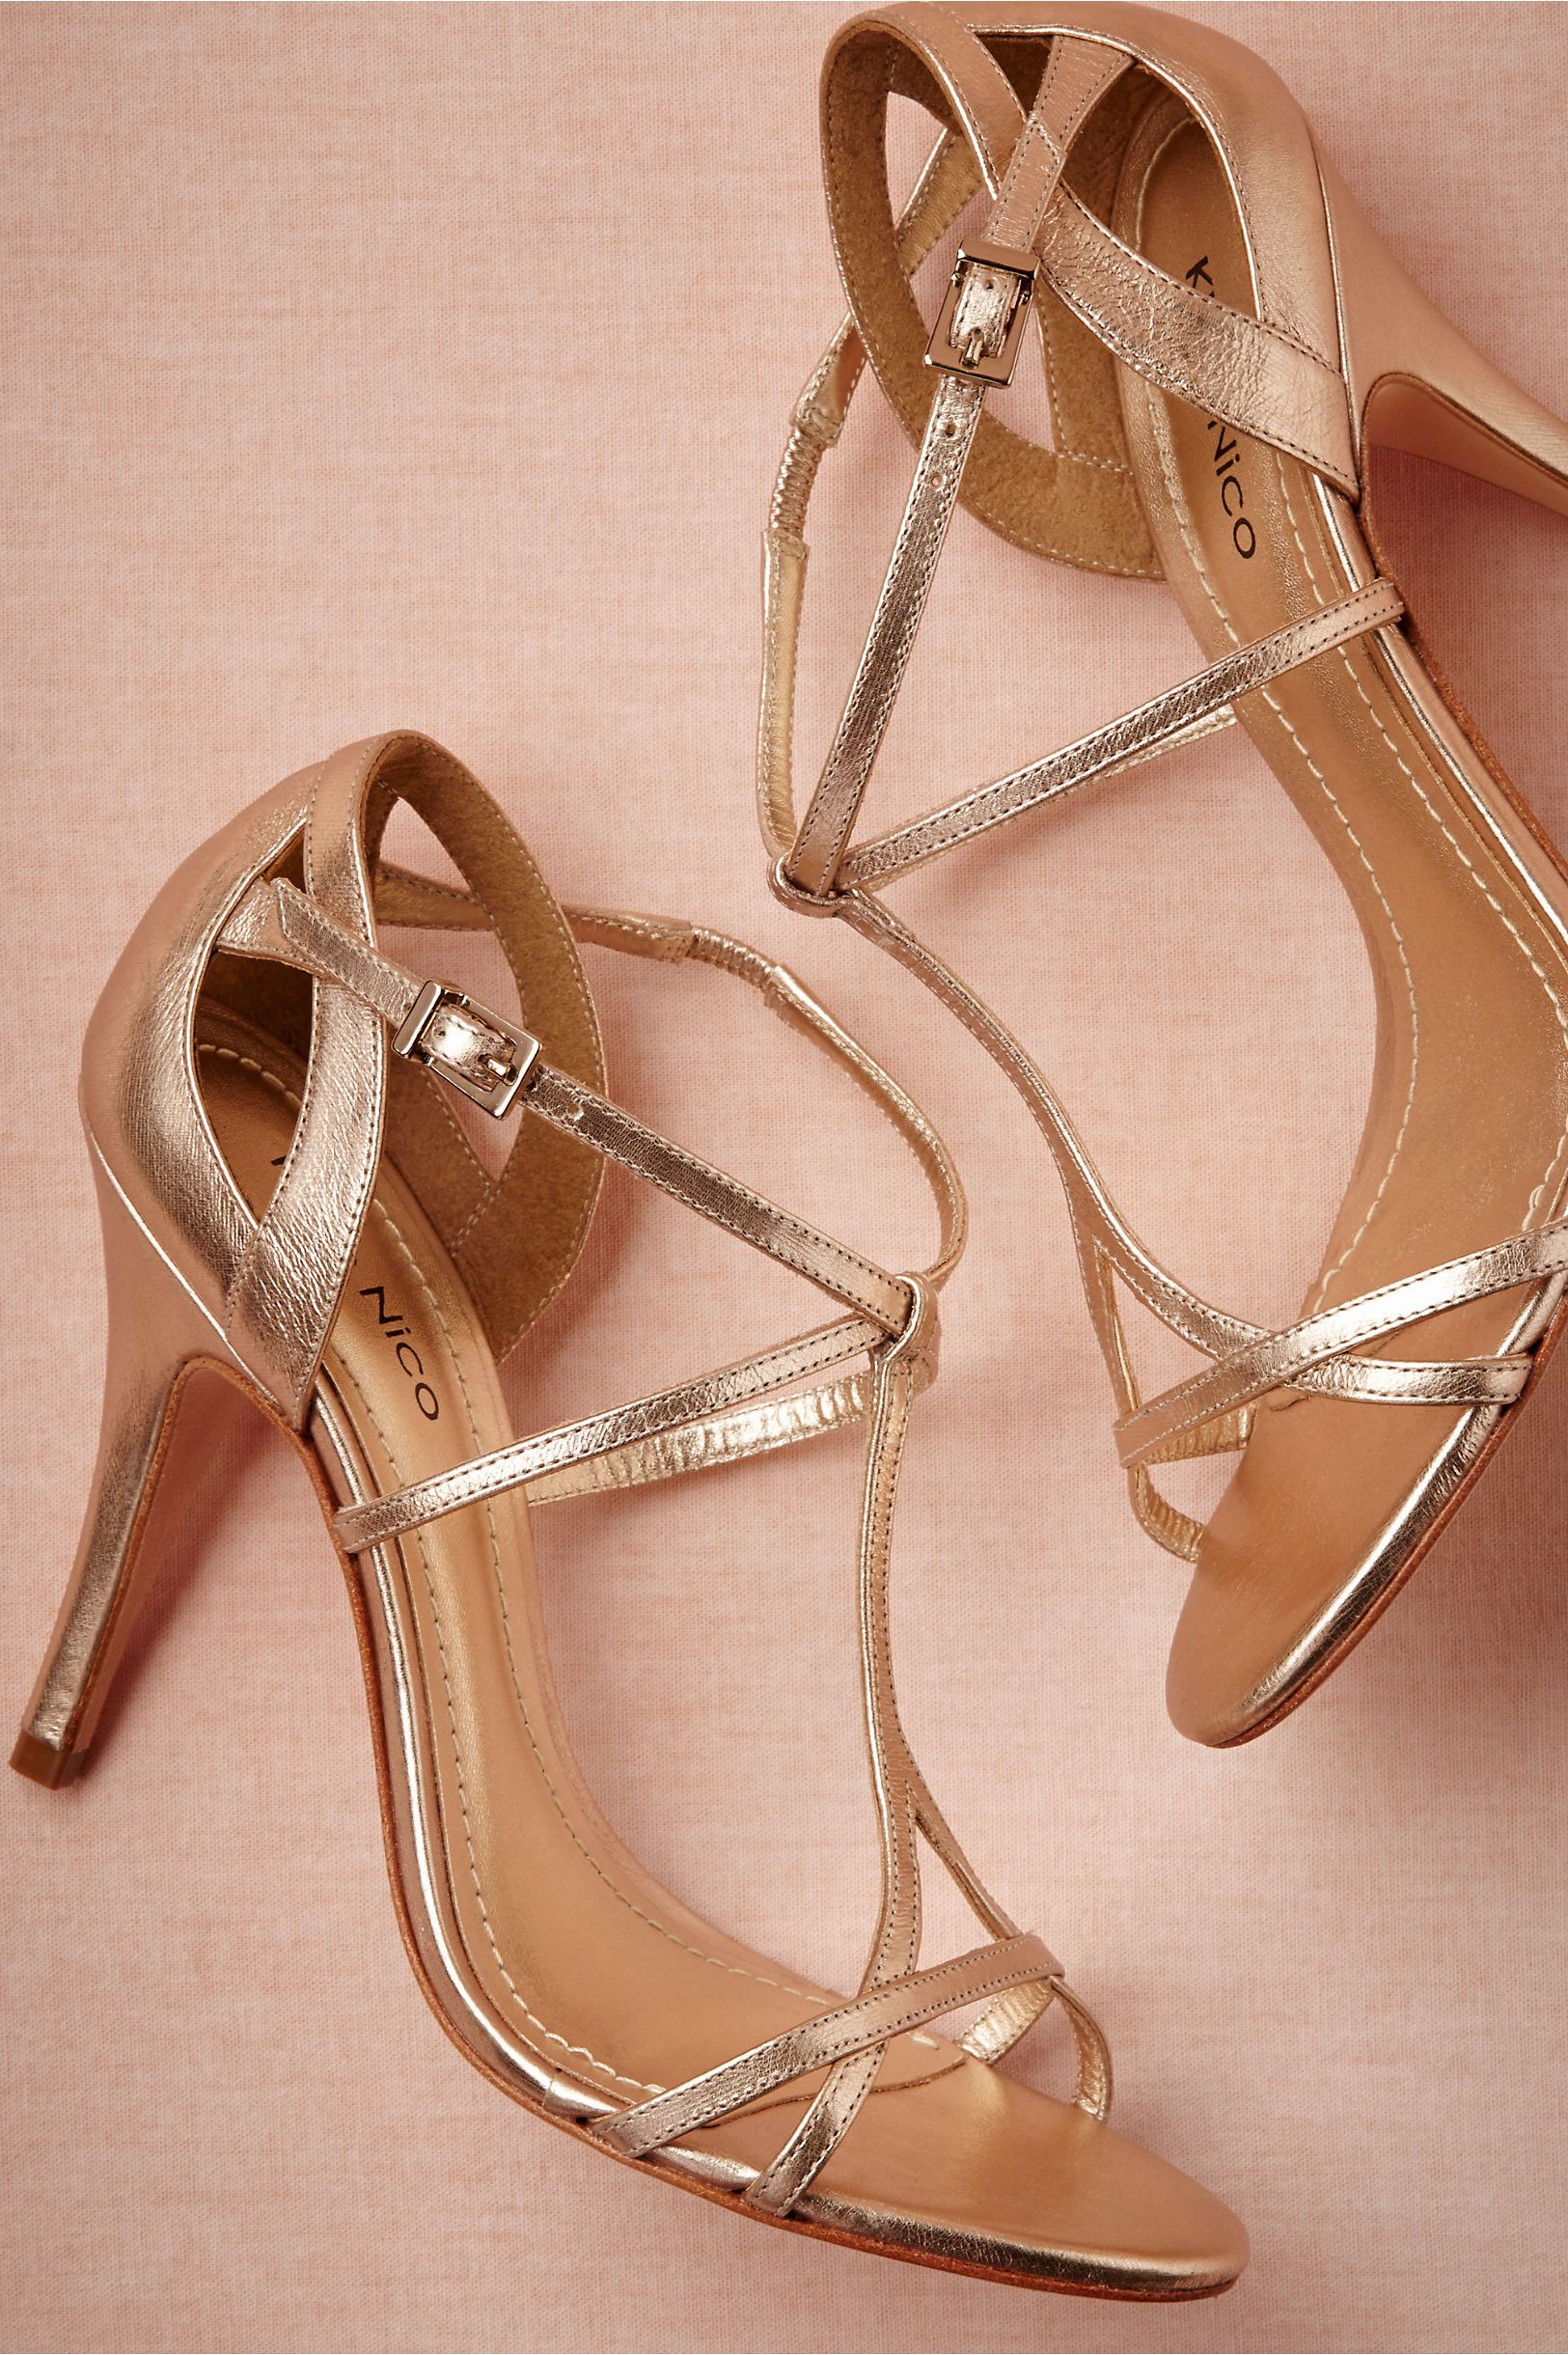 Or gold could work bridesmaid dresses pinterest gold shoes